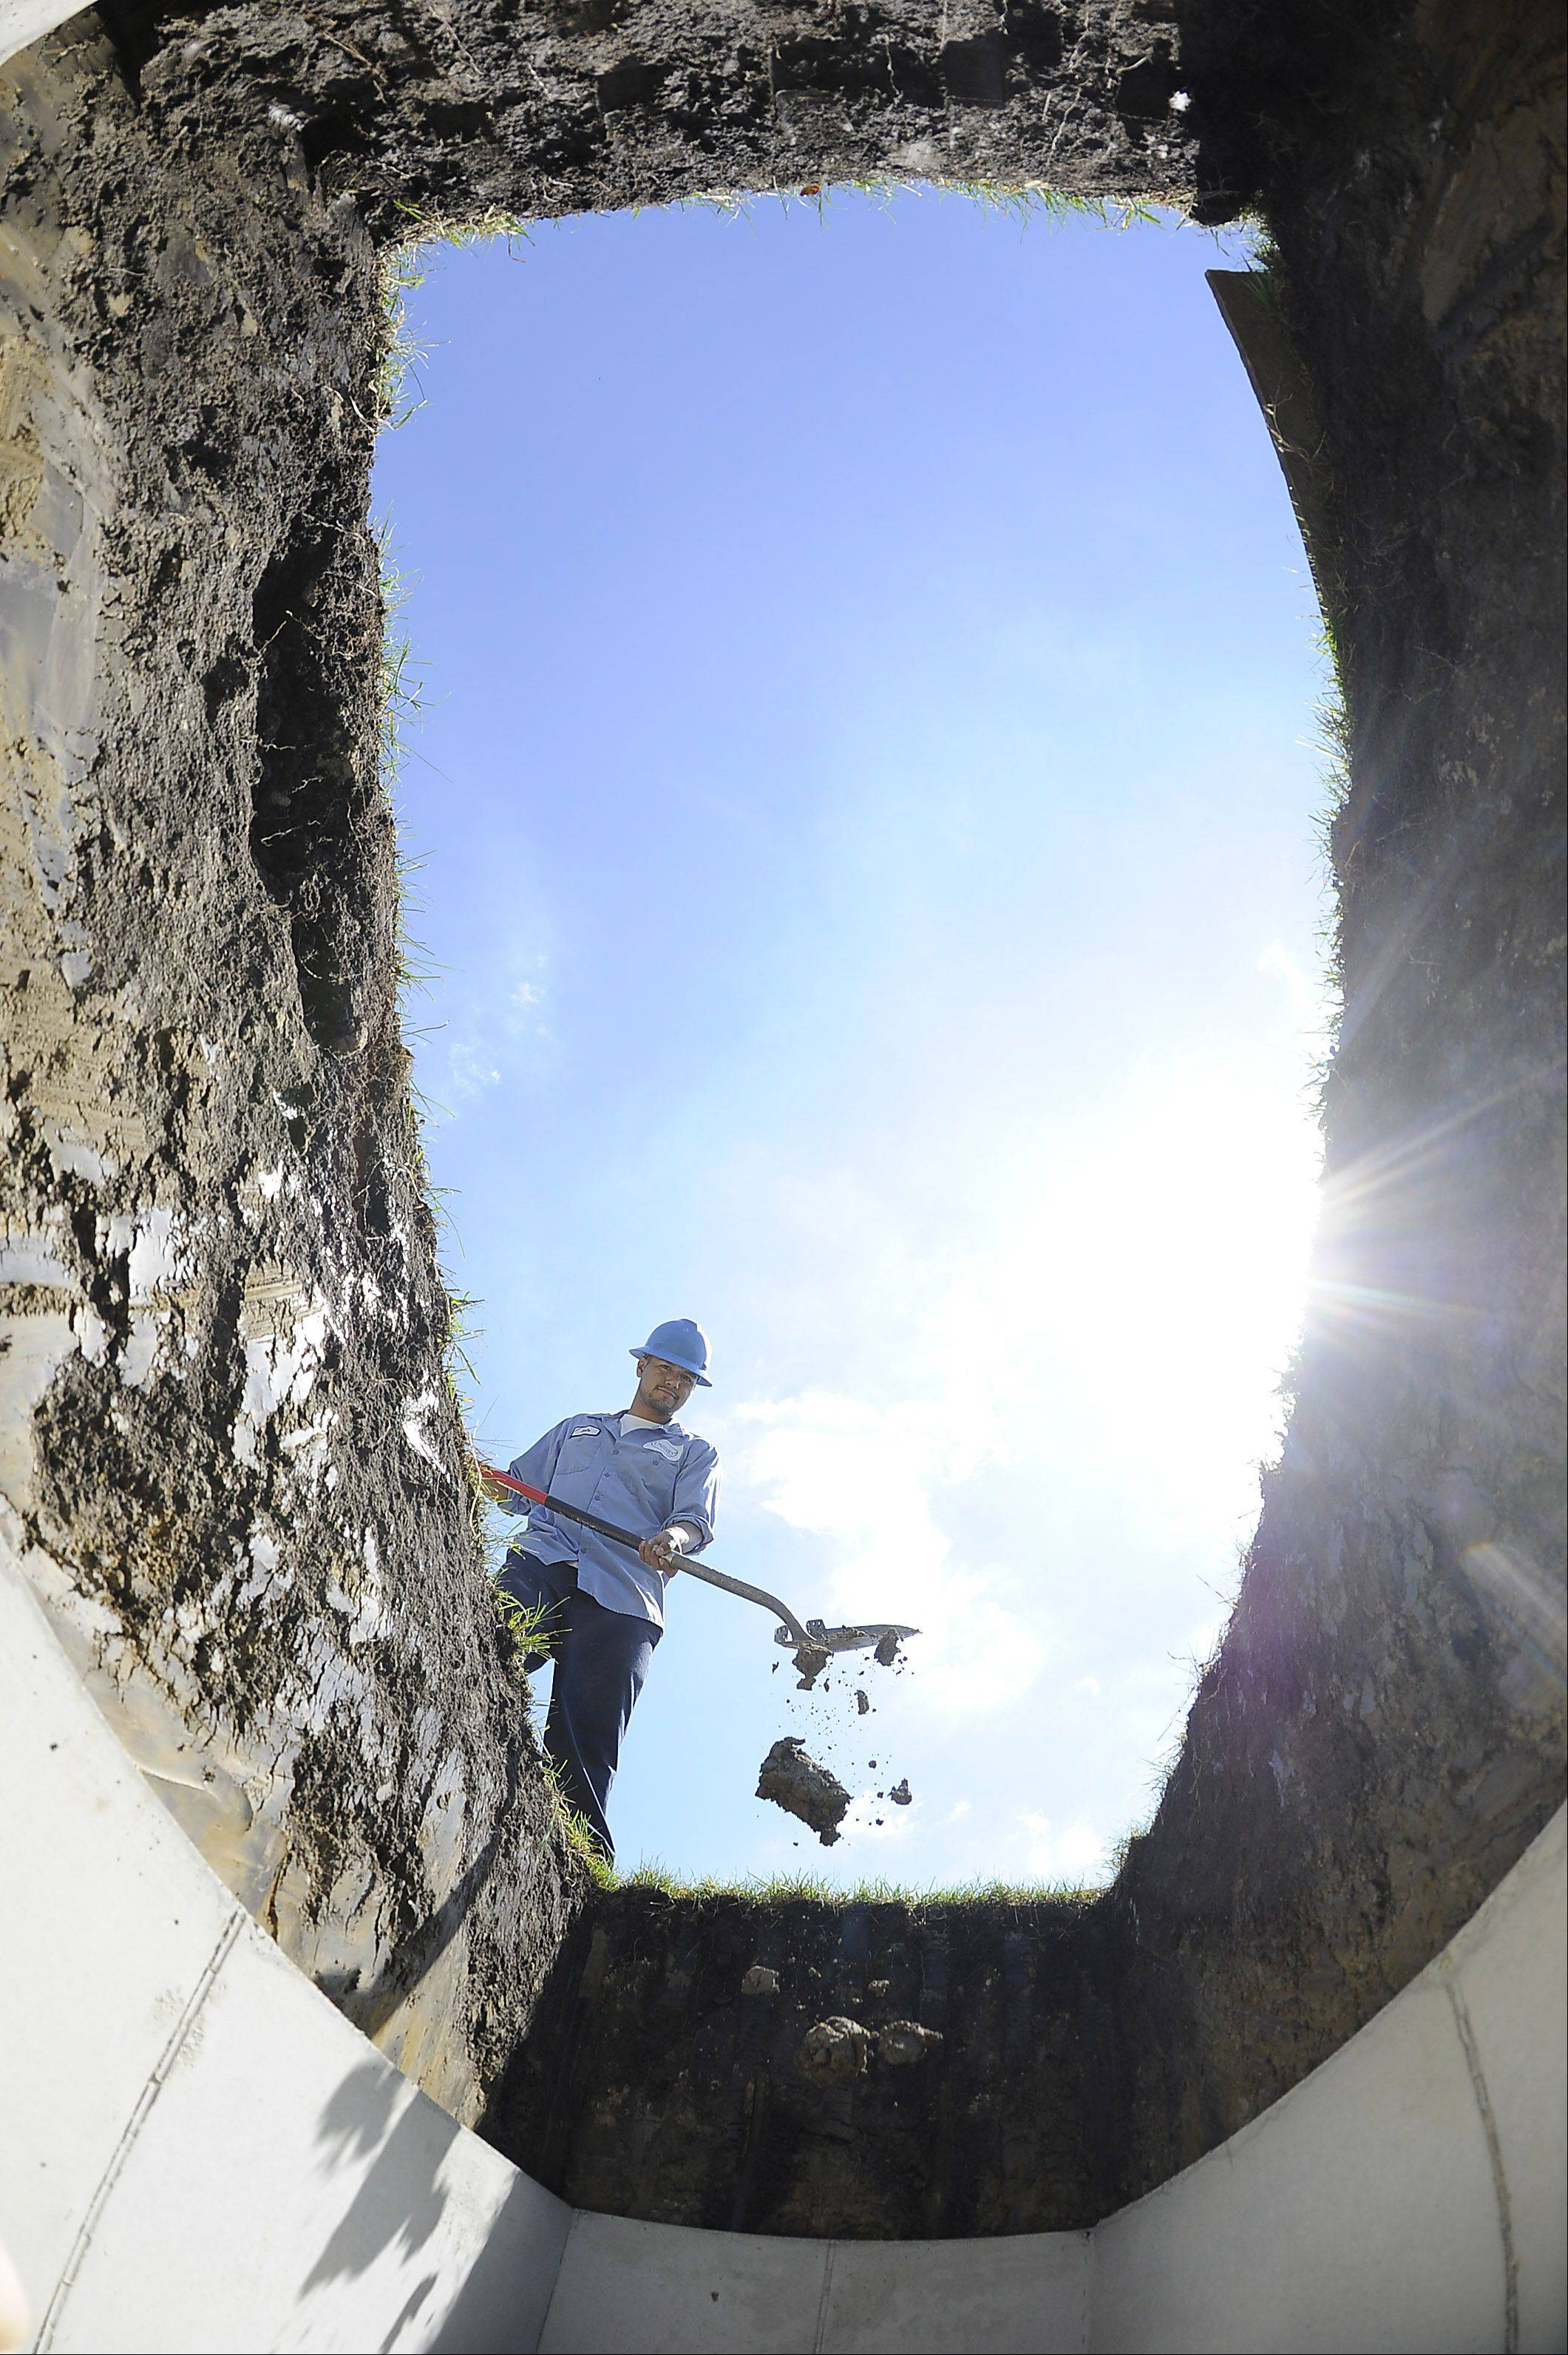 After the vault is lowered into a freshly dug grave, Adalberto Nevarez cleans up around the edges with a shovel, preparing it for the next day's service. Nevarez has dug thousands of graves in the four years he has worked at the cemetery.